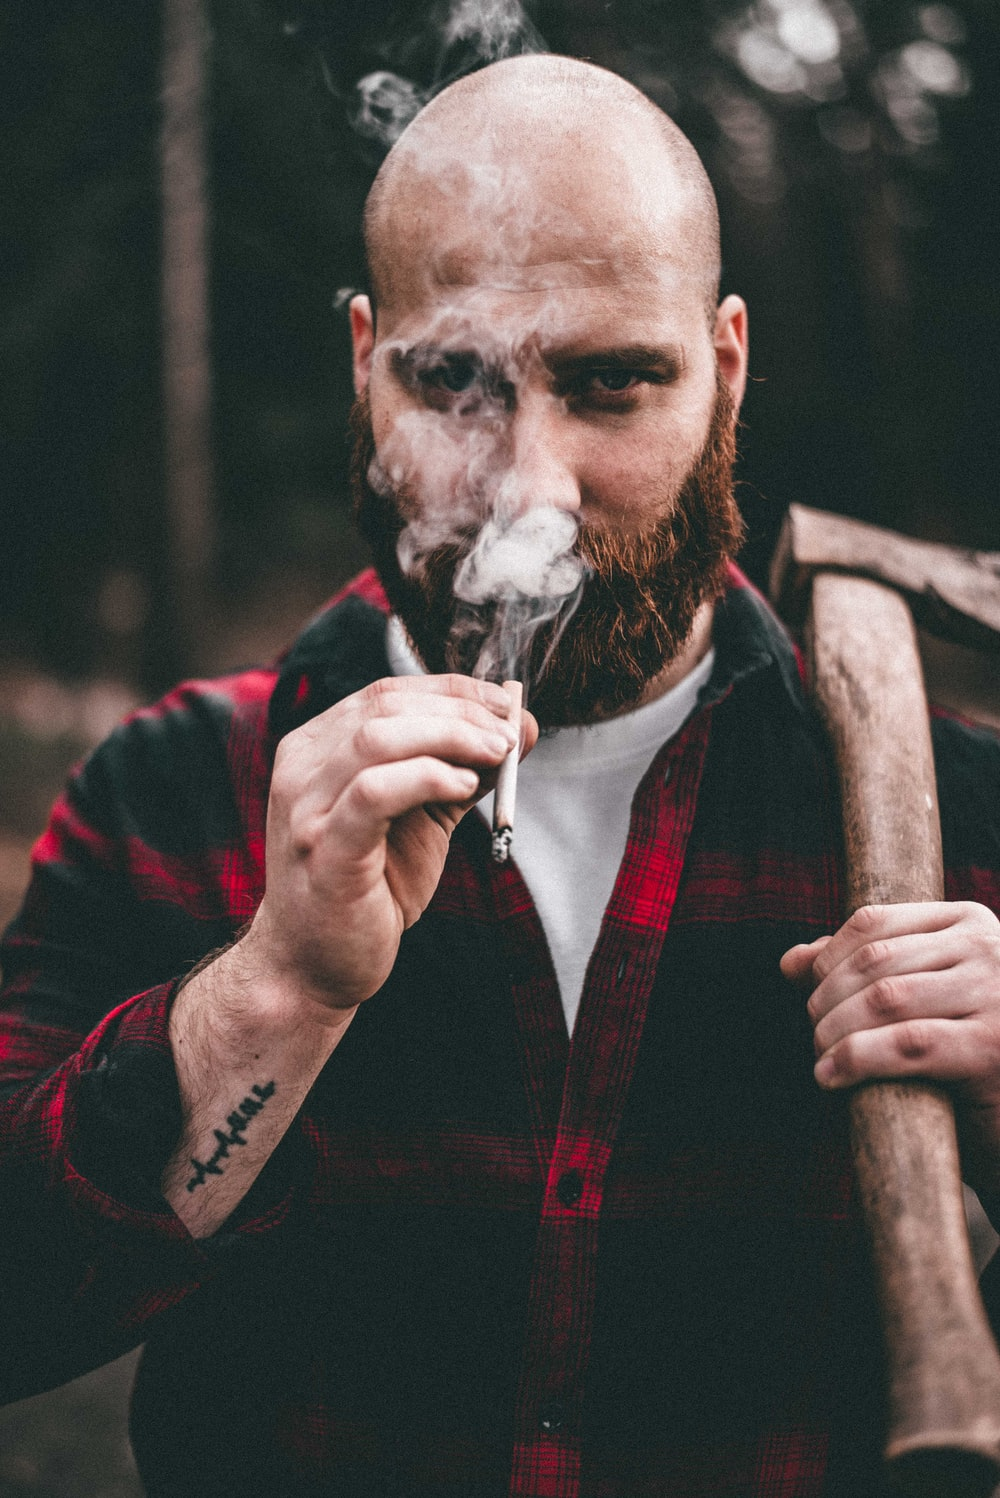 man in red and black jacket smoking